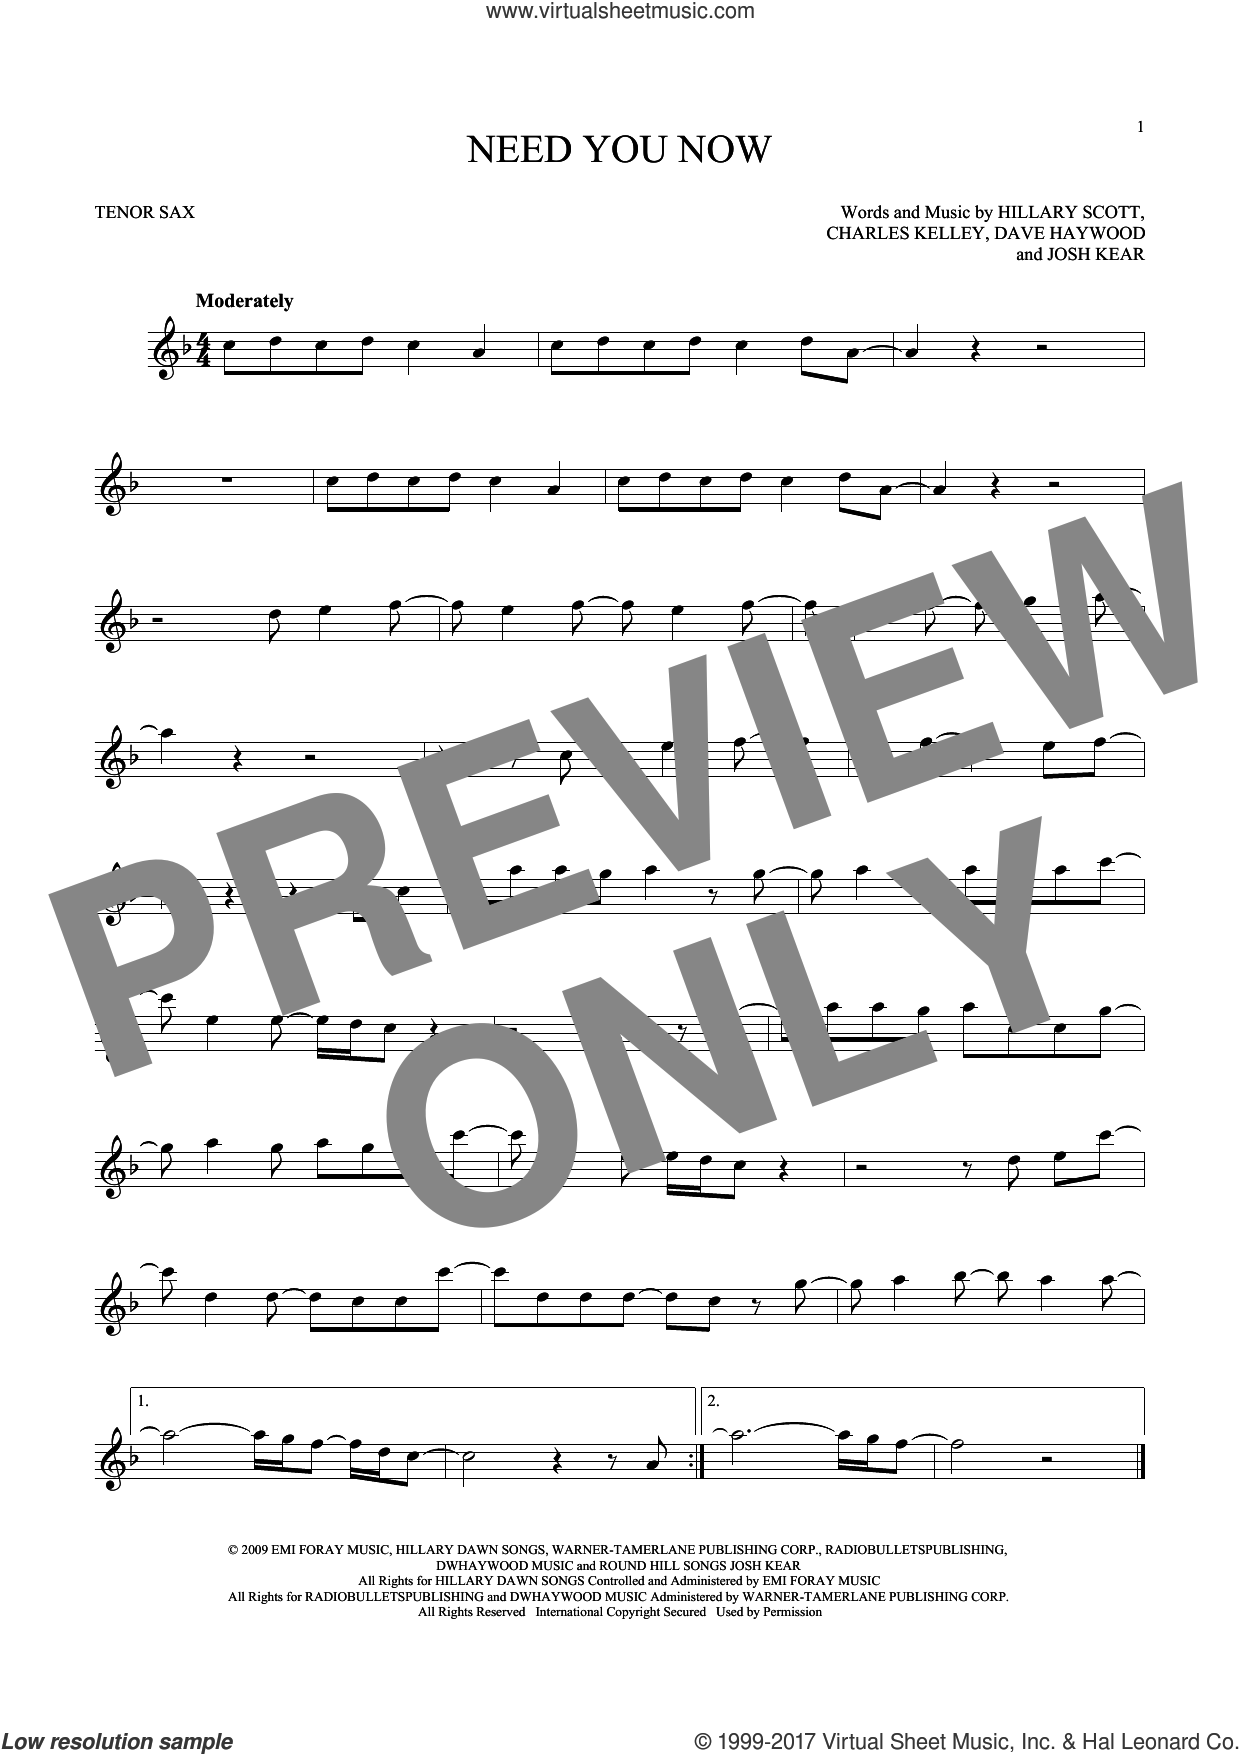 Need You Now sheet music for tenor saxophone solo ( Sax) by Lady Antebellum, Charles Kelley, Dave Haywood, Hillary Scott and Josh Kear, intermediate tenor saxophone ( Sax)